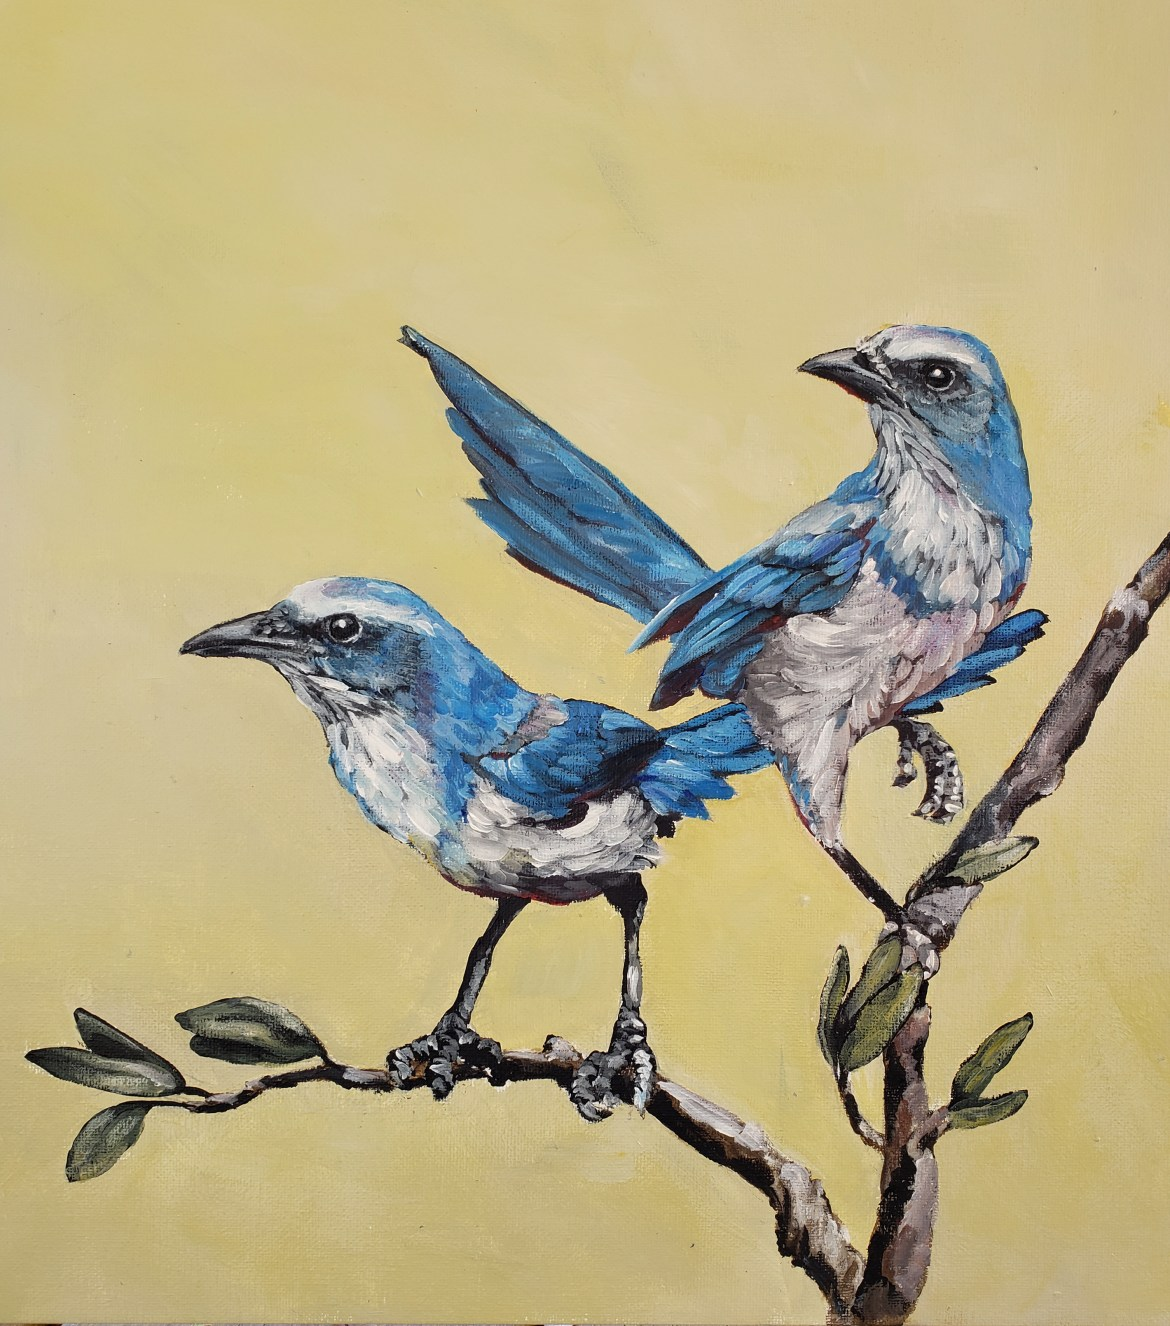 Mural of two blue Scrub Jays perched on a branch